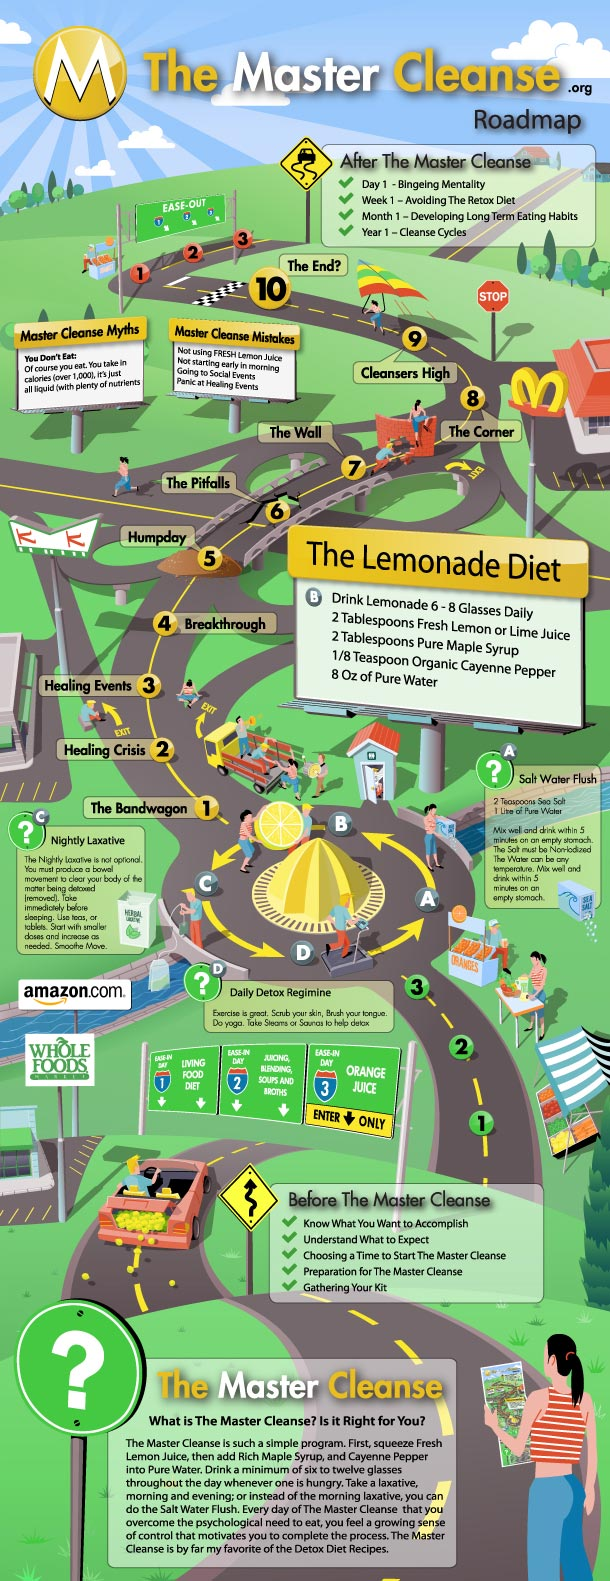 The Master Cleanse Roadmap (Day-by-Day)